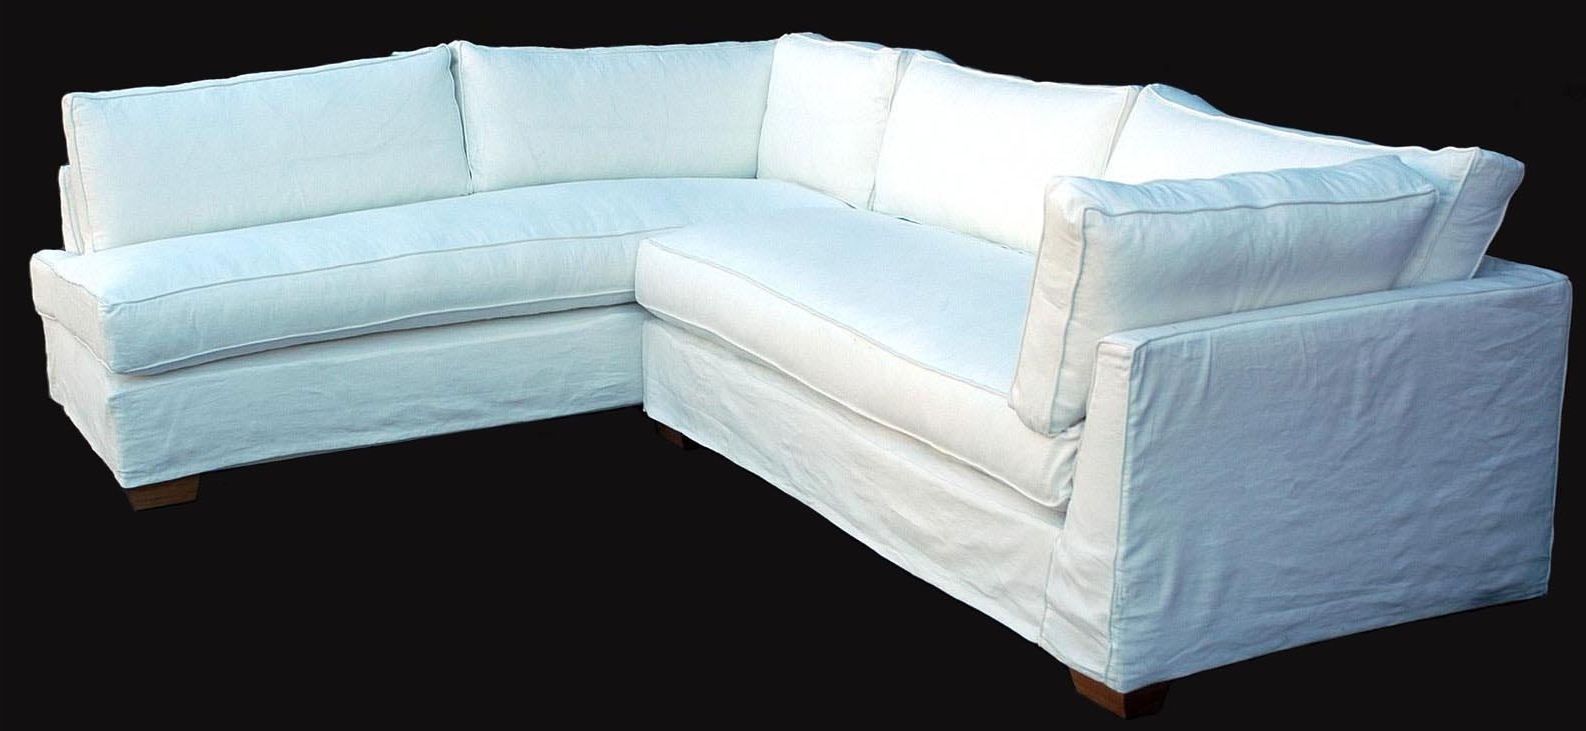 Widely Used Luxury Slipcover Sectional Sofa 83 For Your Modern Sofa Ideas With Throughout Slipcovered Sofas With Chaise (View 12 of 15)